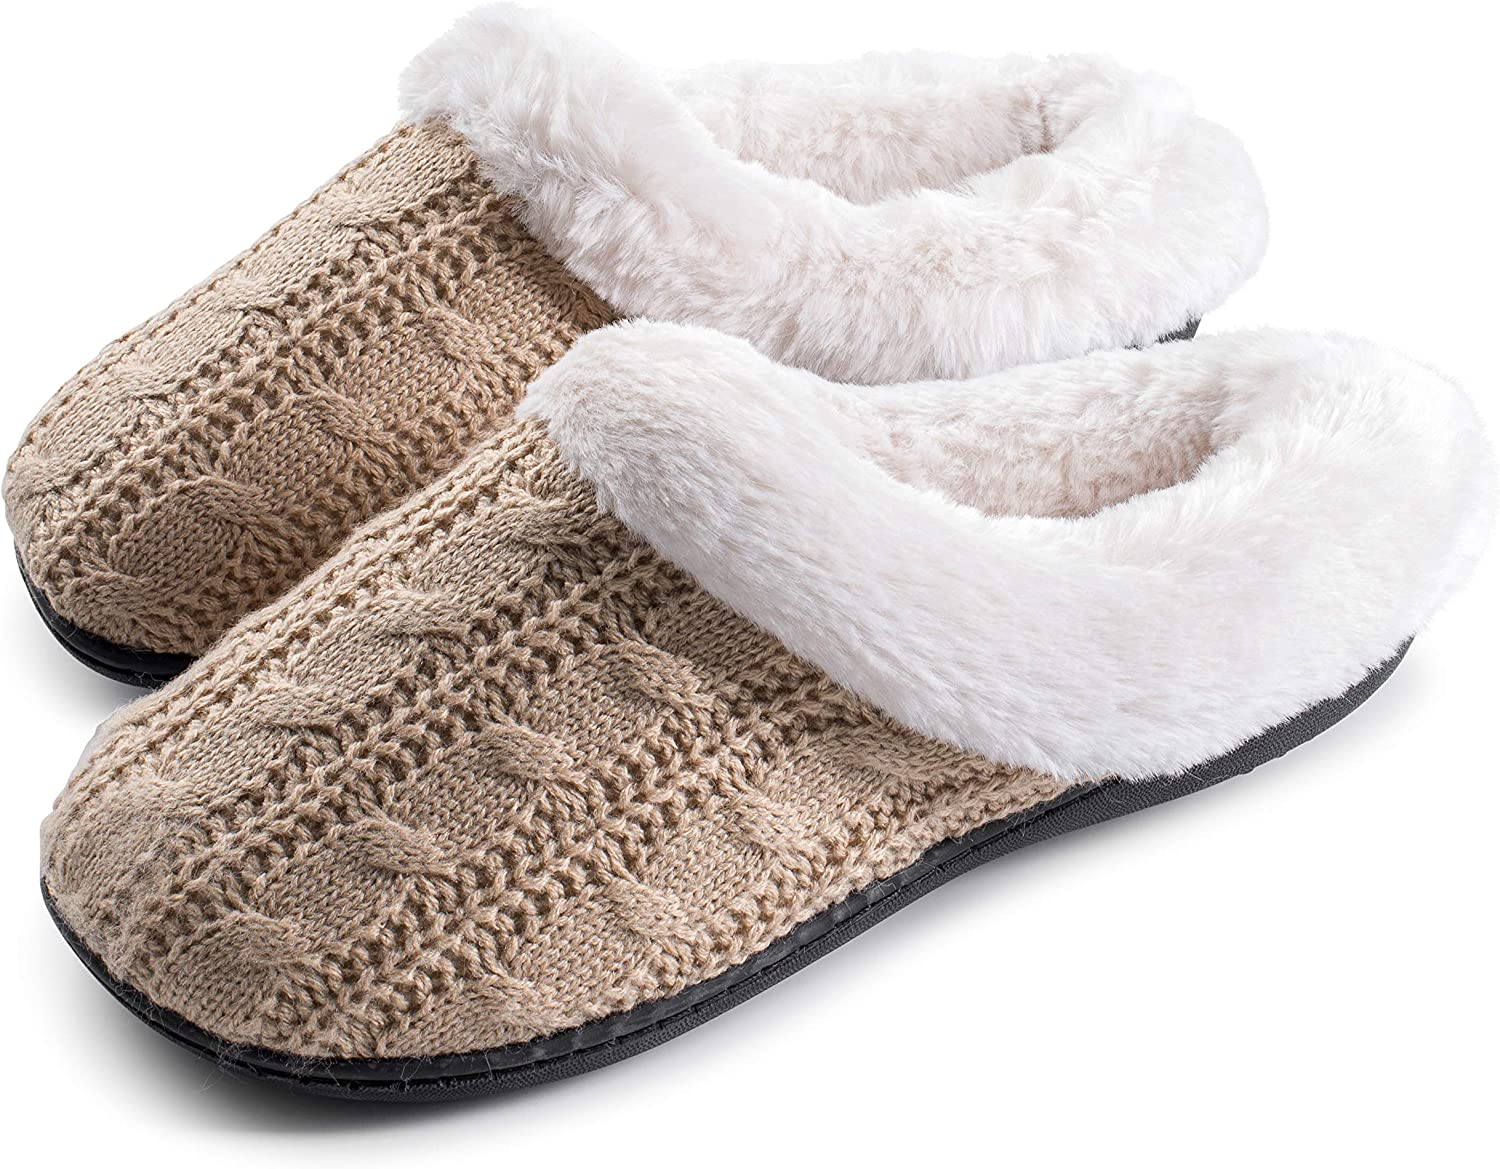 Joan vass Women's Cabled Knit Sweater Clog Winter Bedroom Slippers Super Cozy and Comfort